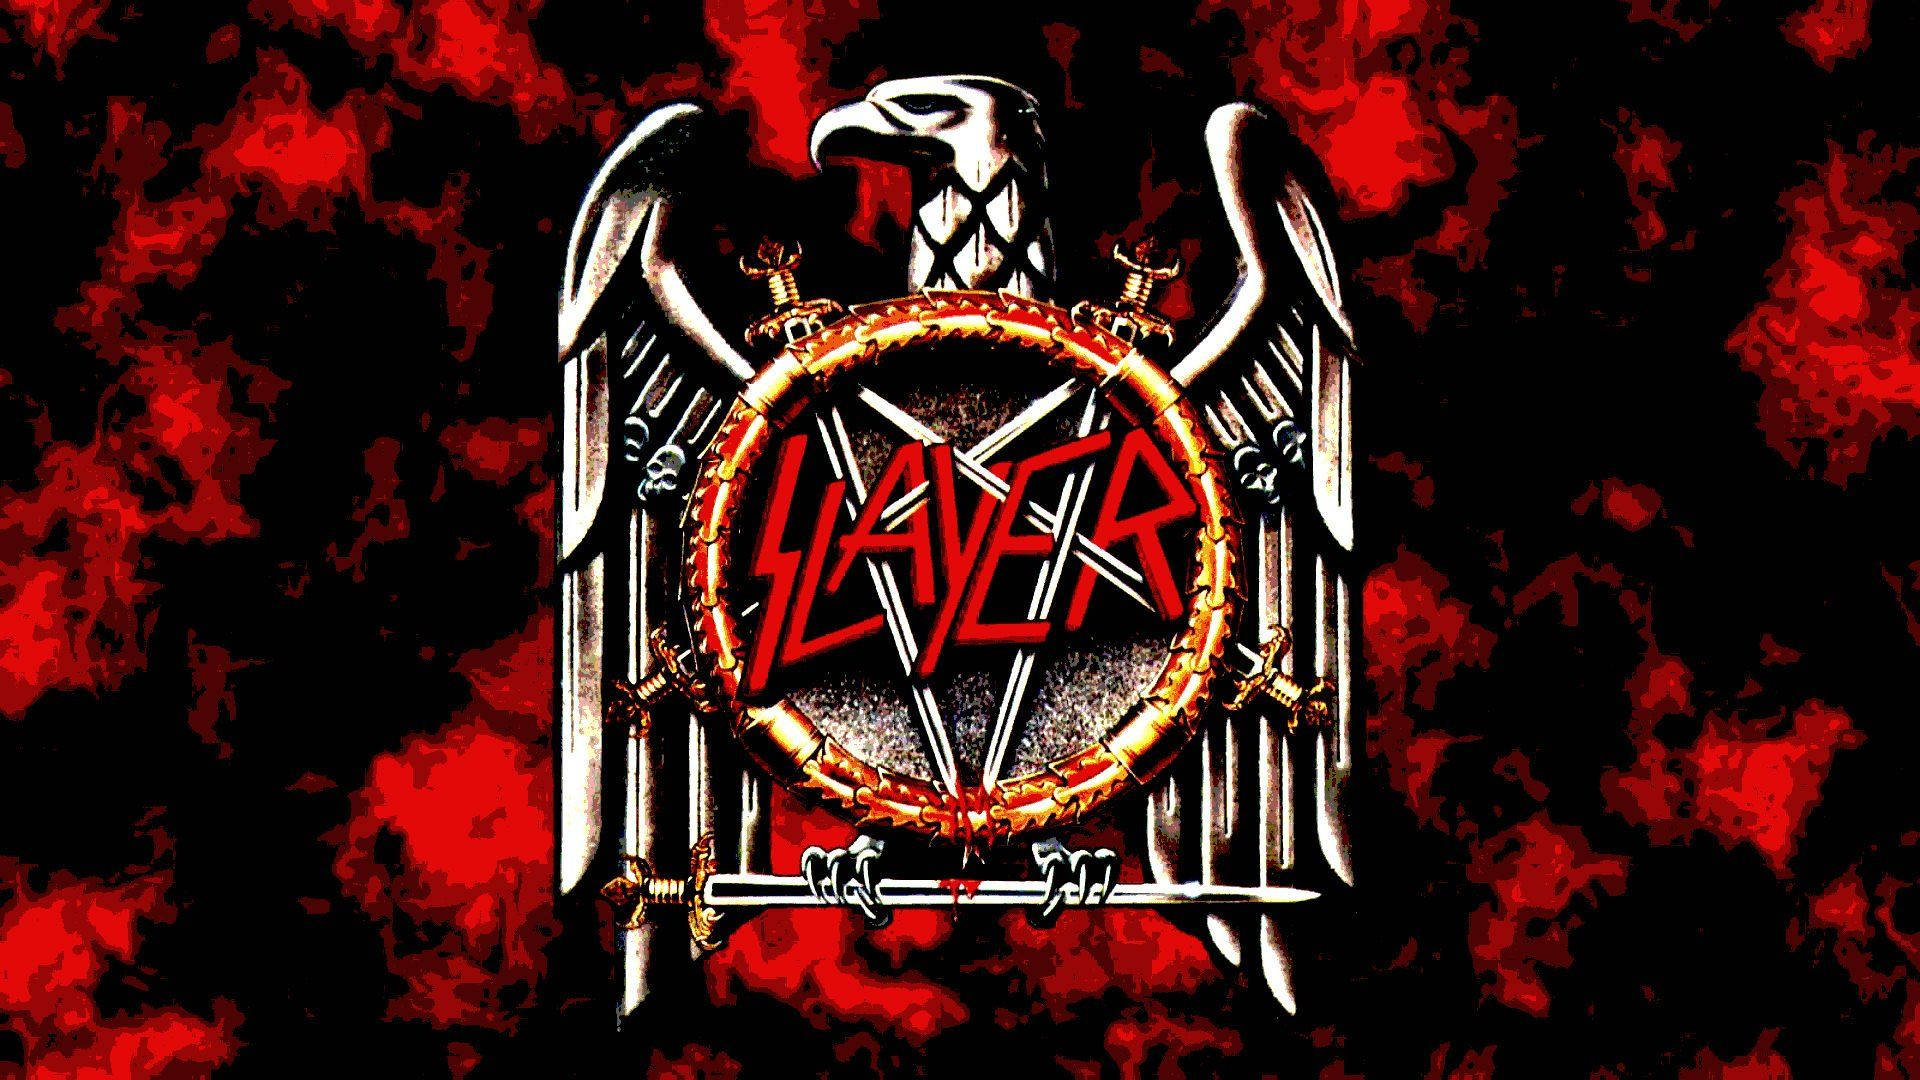 Download Slayer Band Wallpapers 1920x1080